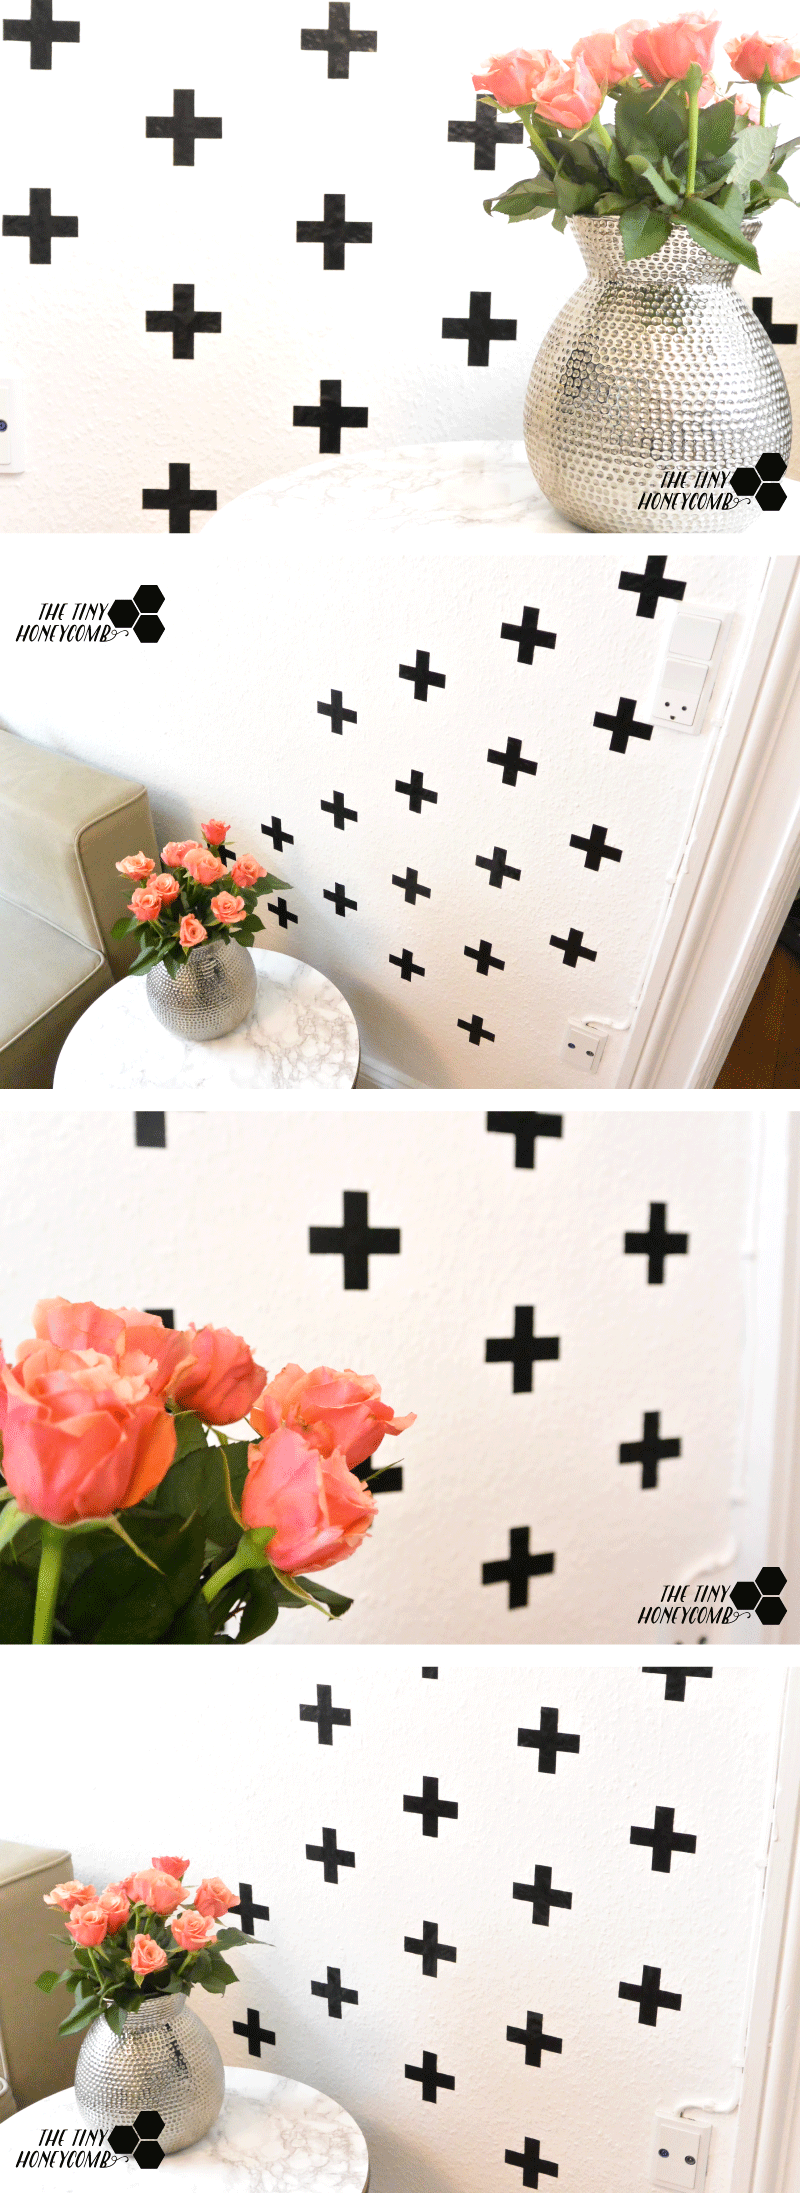 DIY Swiss cross pattern as wall decor - how to easily make an art piece on your wall using vinyl